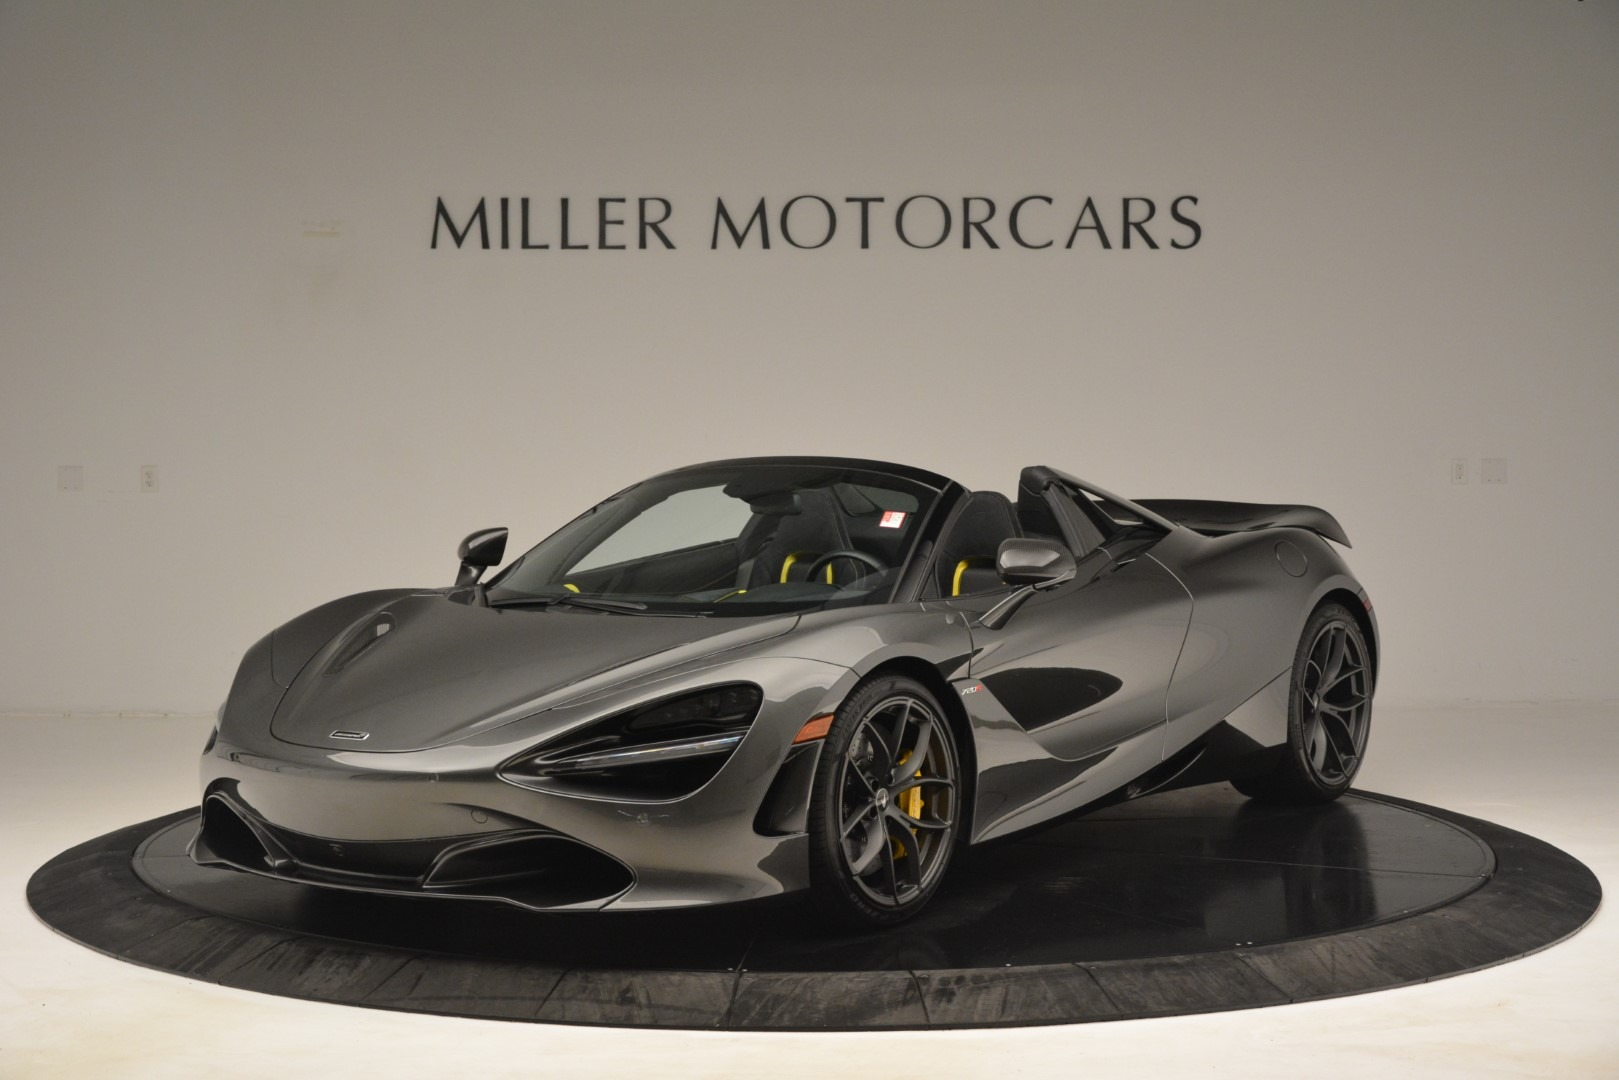 Used 2020 McLaren 720S Spider for sale Sold at Bentley Greenwich in Greenwich CT 06830 1